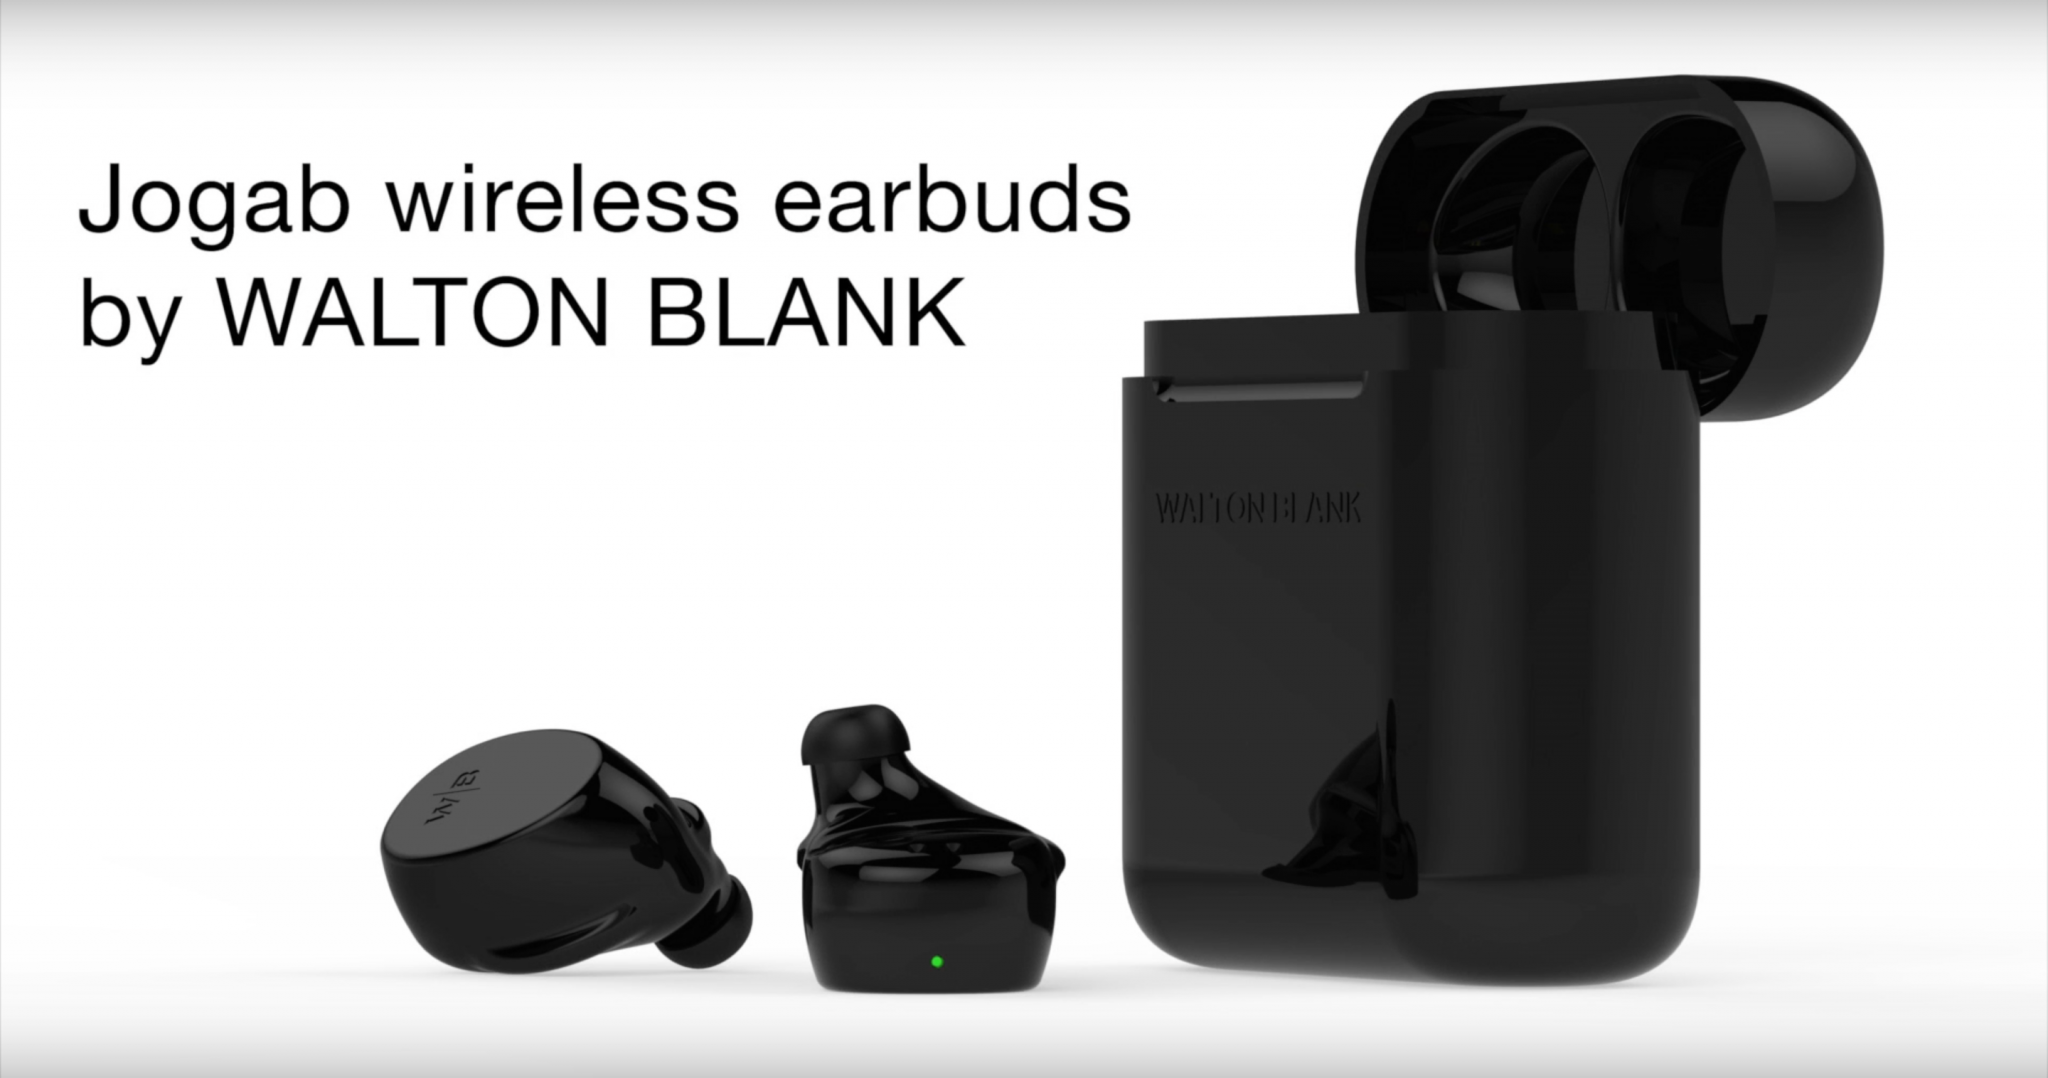 Jogab - Next Generation Wireless Earbuds